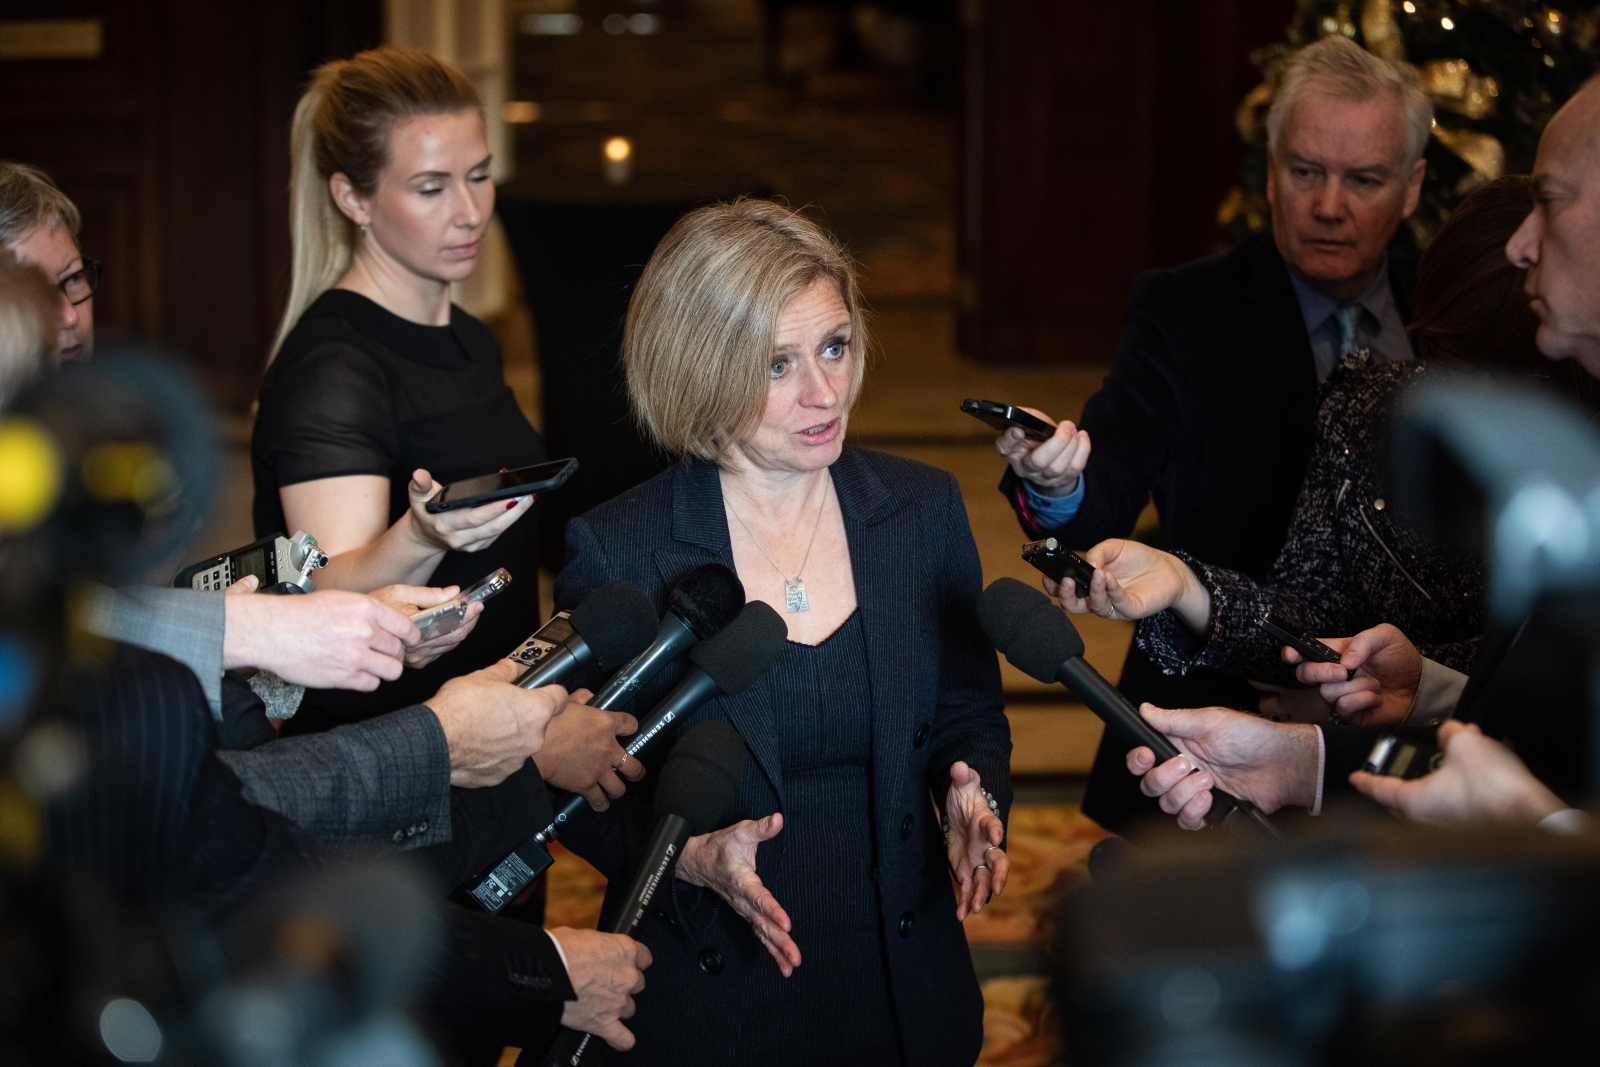 Alberta Premier Rachel Notley speaks to reporters in Ottawa on Nov. 28, 2018. Photo by Alex Tétreault